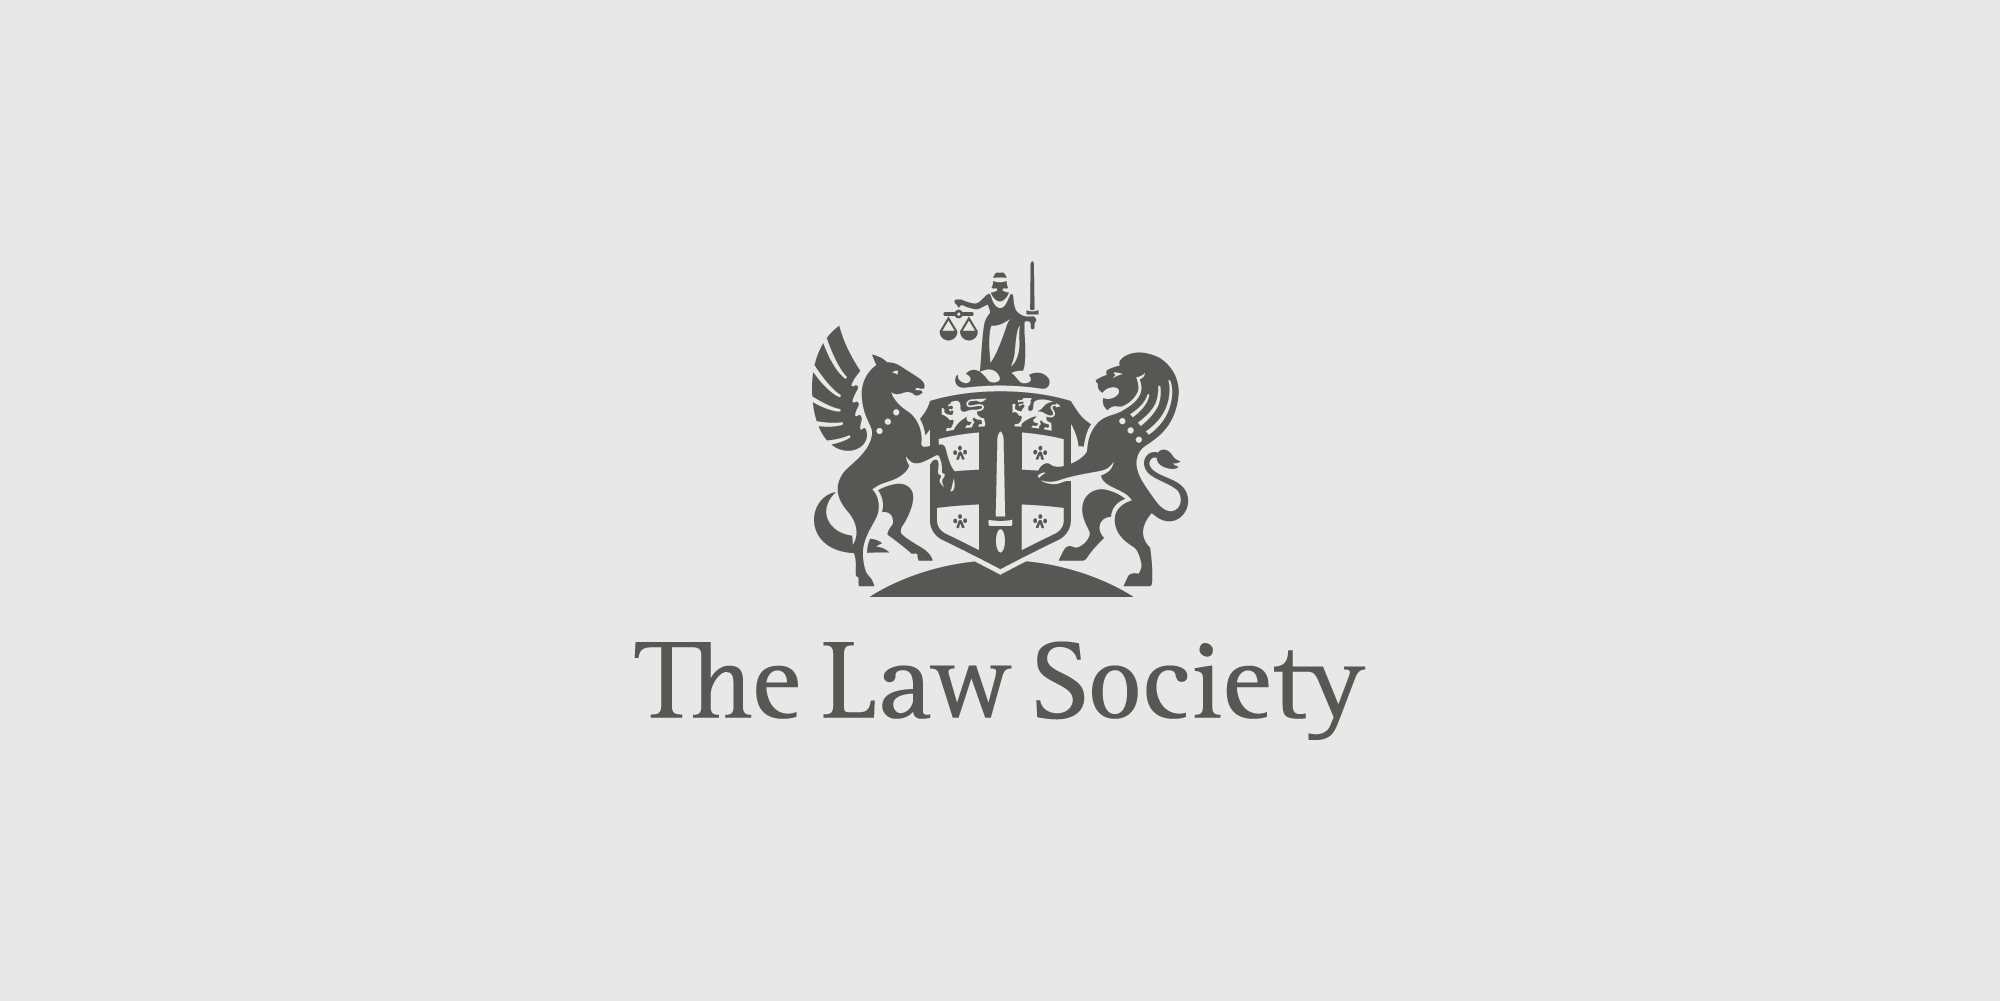 7 Business Continuity lessons from the fire at The Law Society